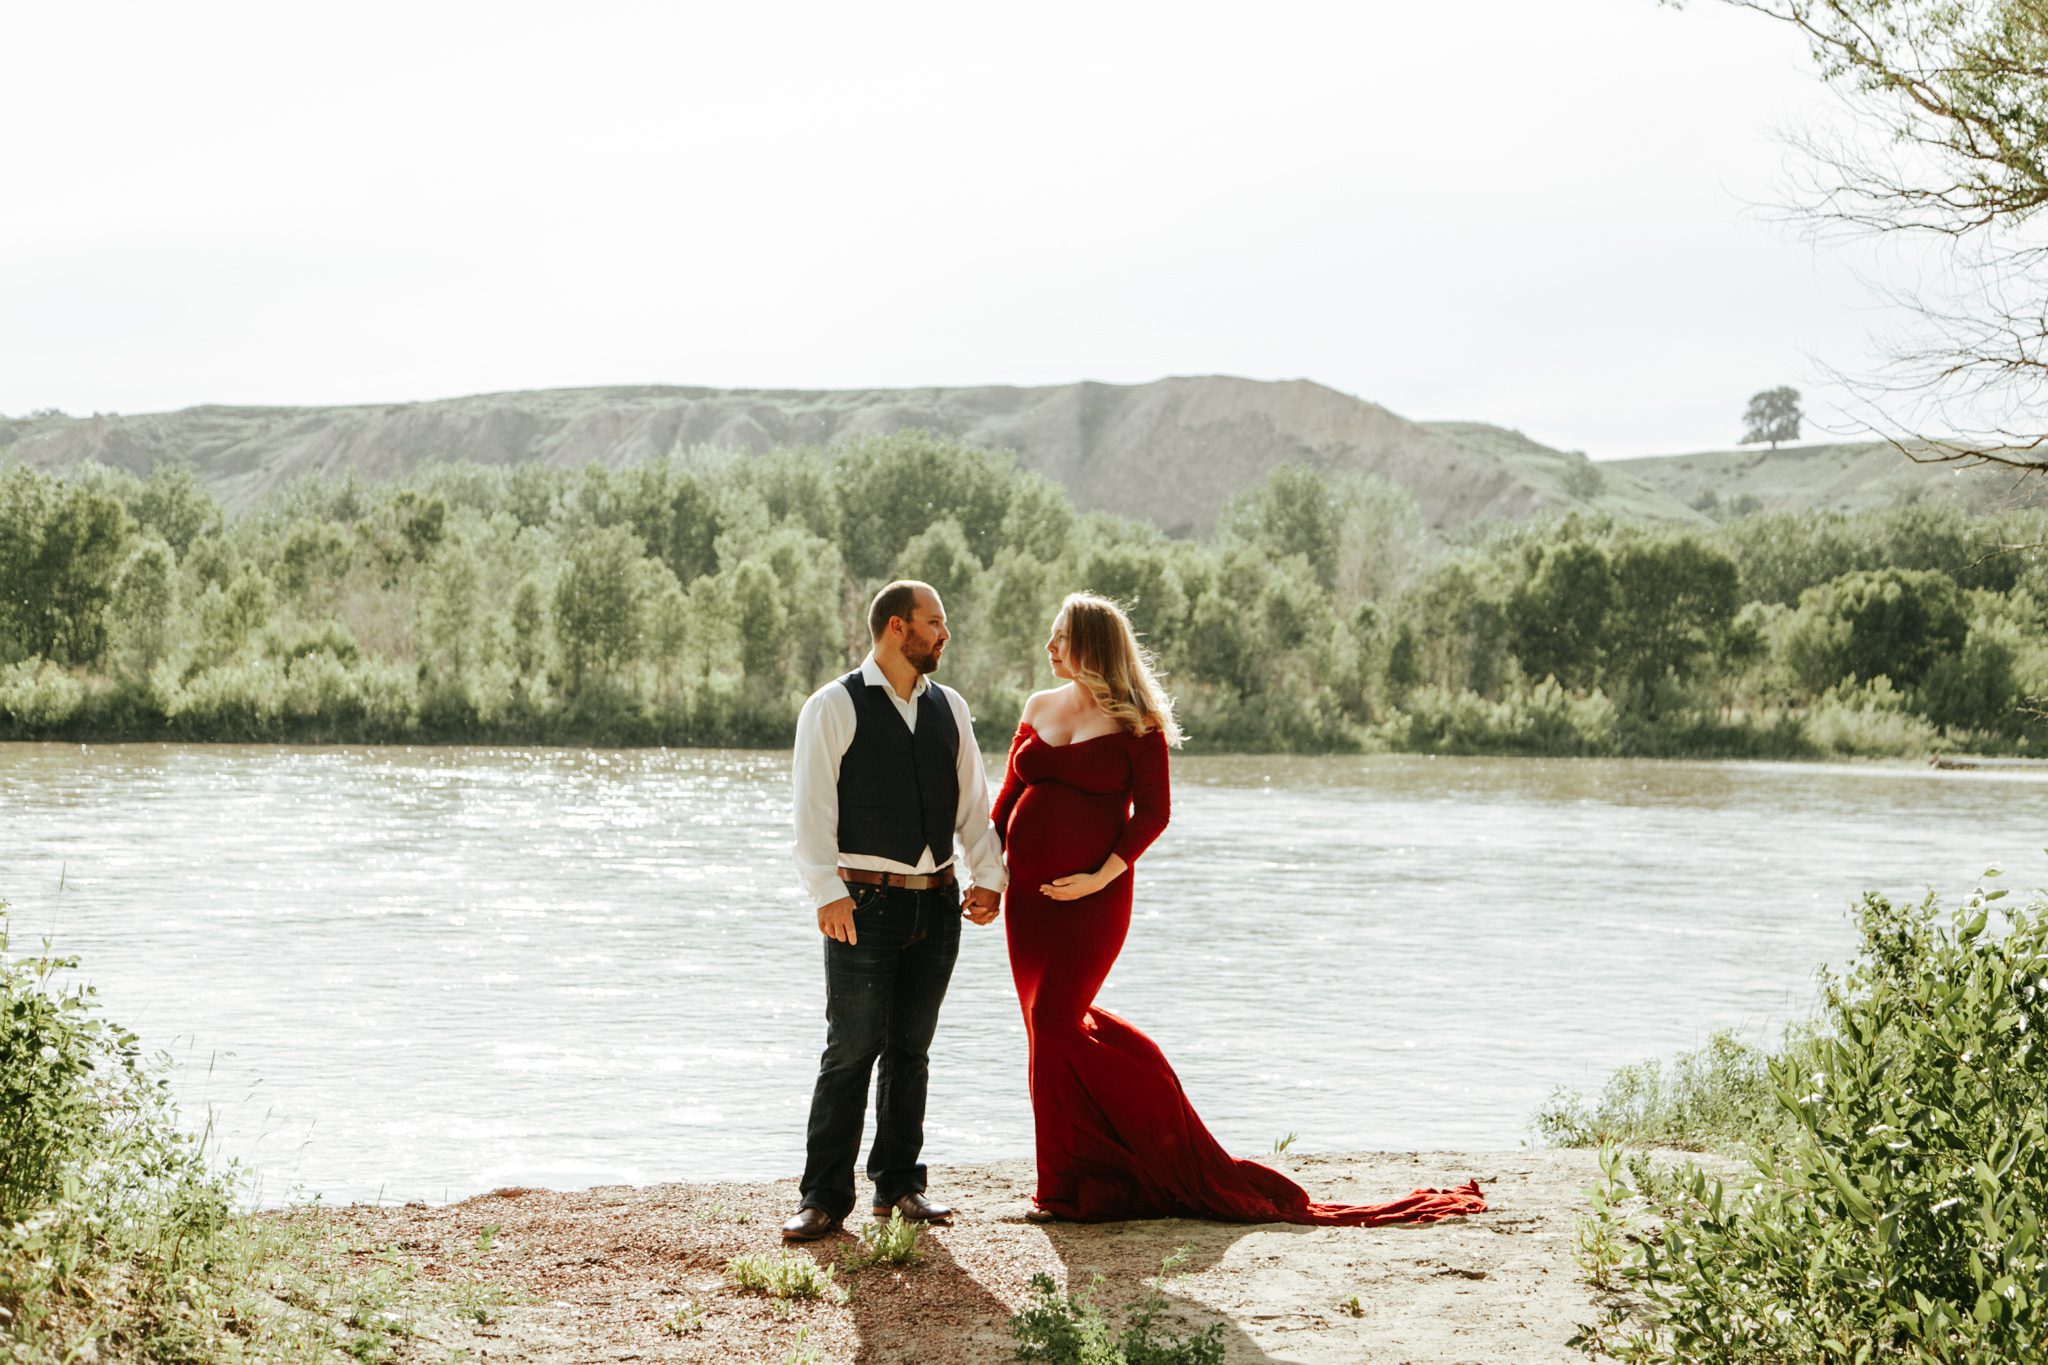 lethbridge-photographer-love-and-be-loved-photography-katie-maternity-birth-photographer-picture-image-photo-8.jpg